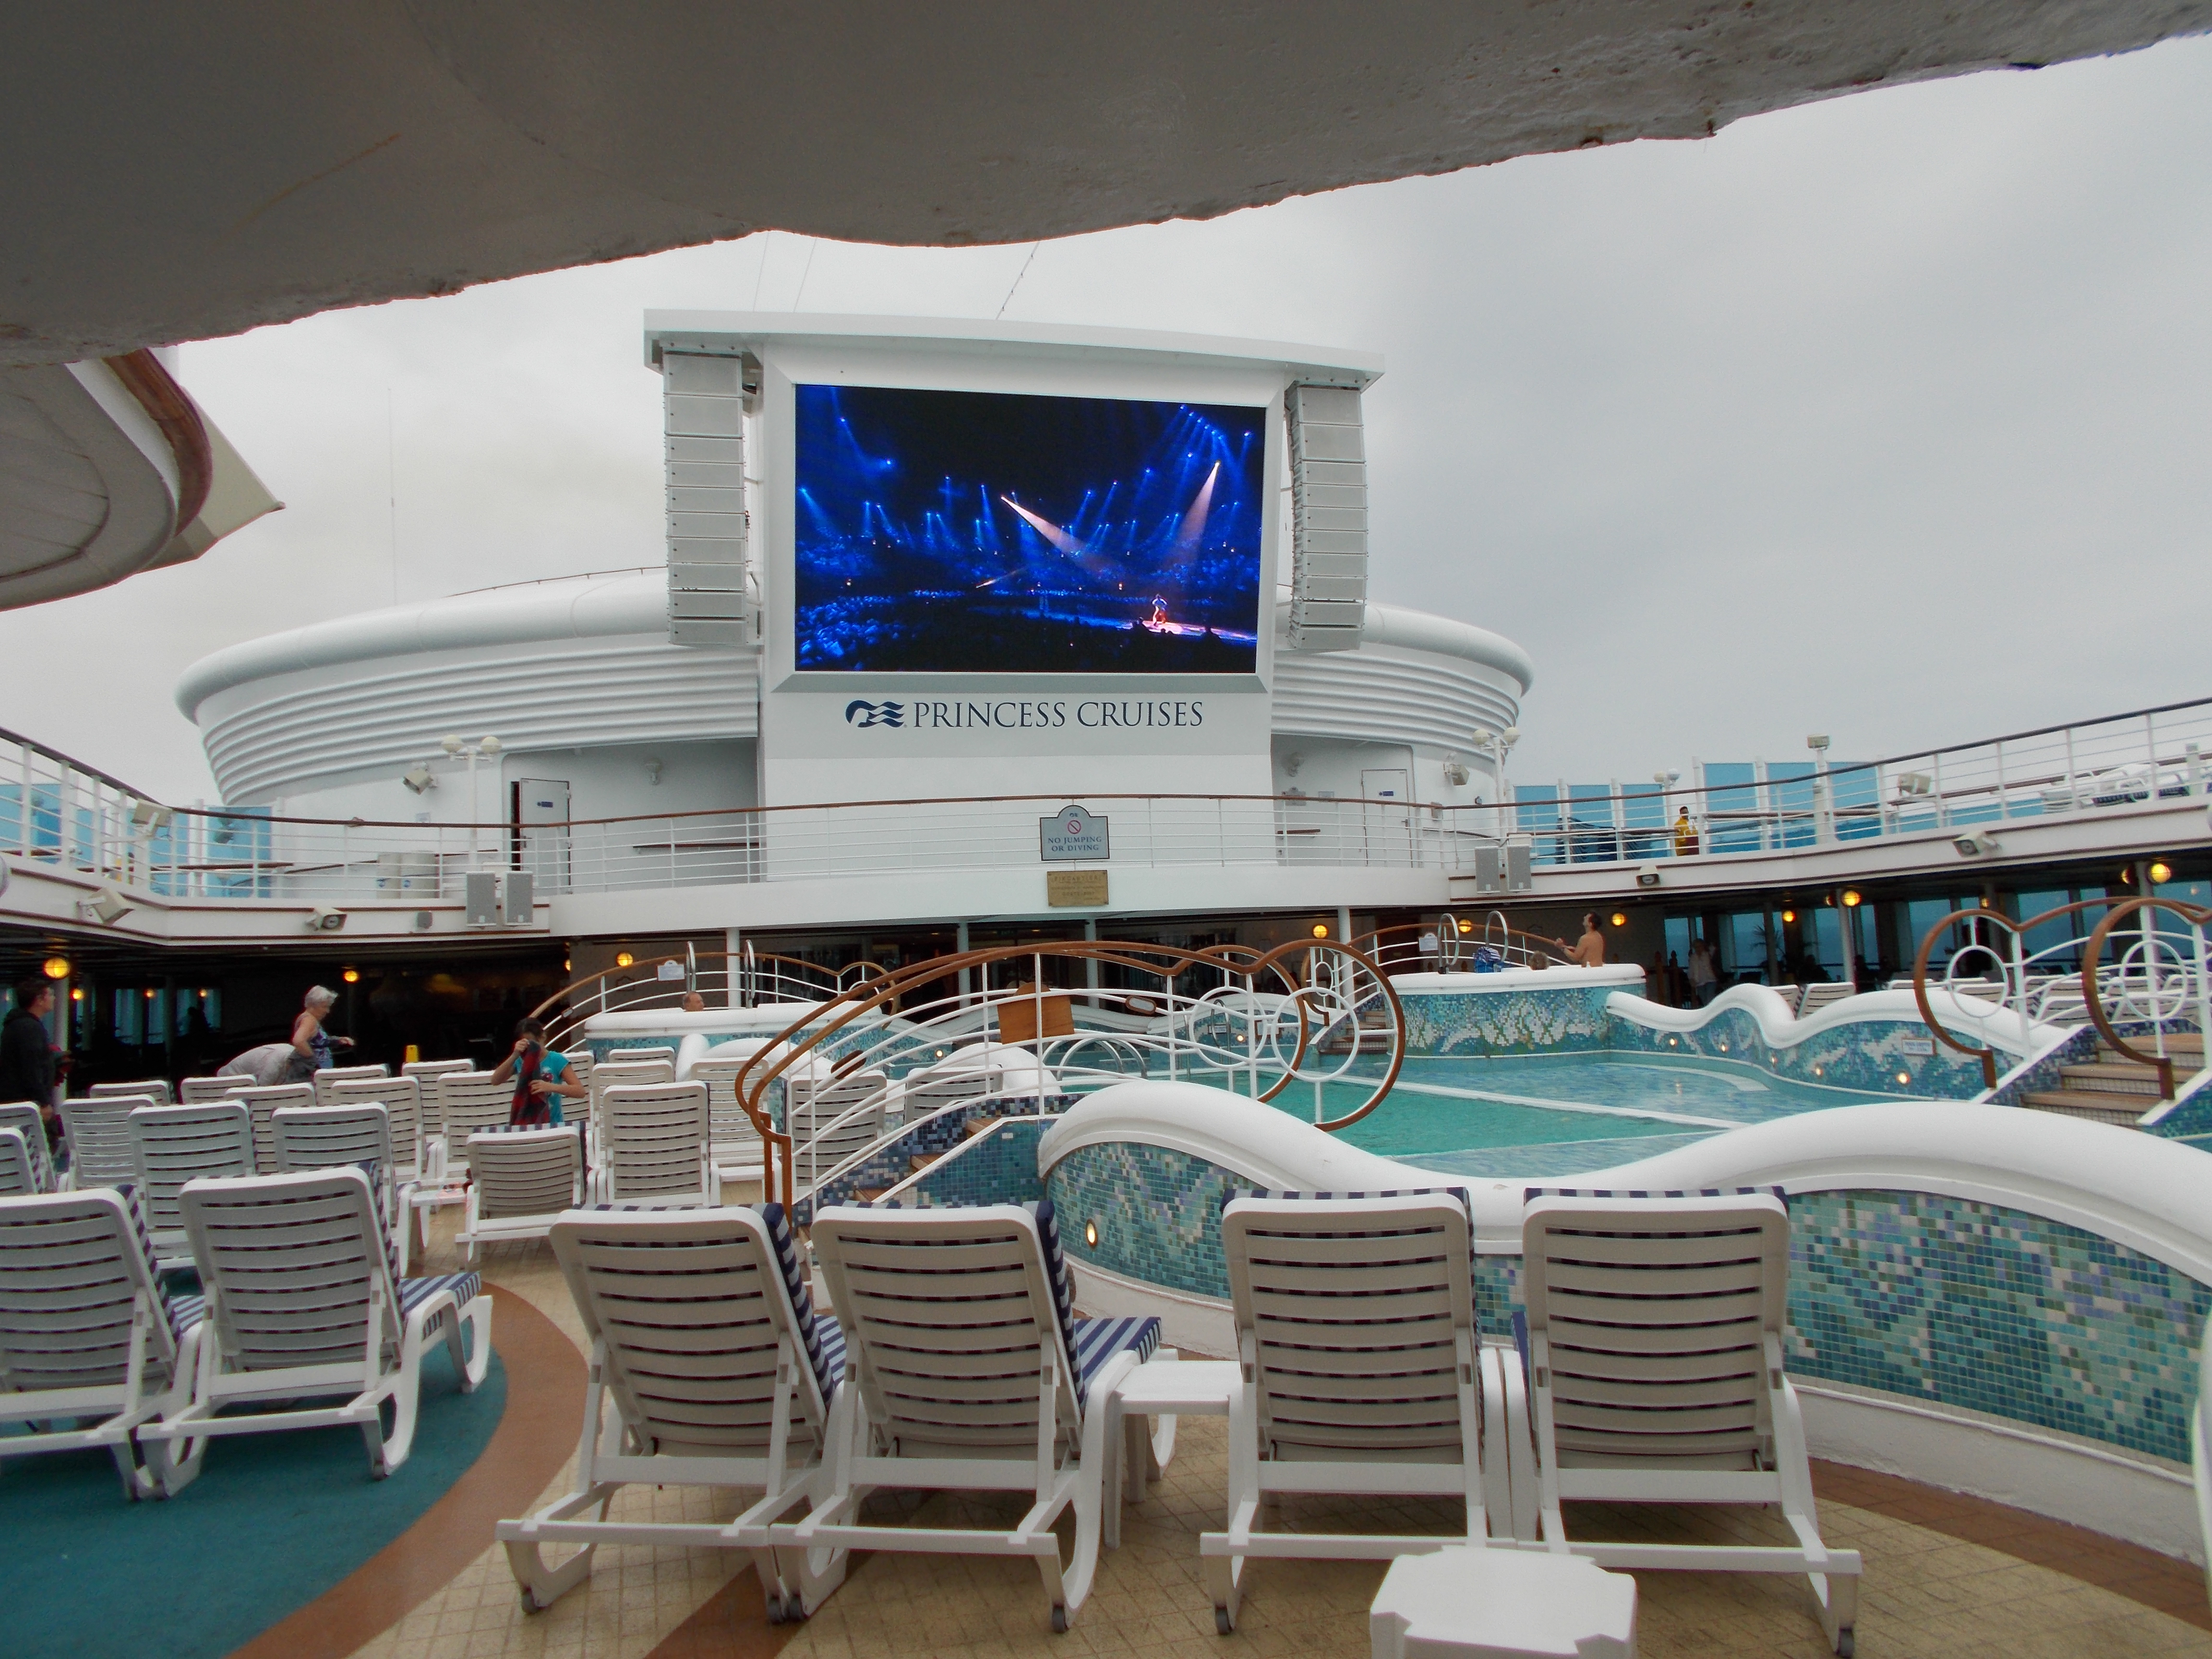 WE'RE GOING BACK TO HAWAII ON THE GRAND PRINCESS CRUISE